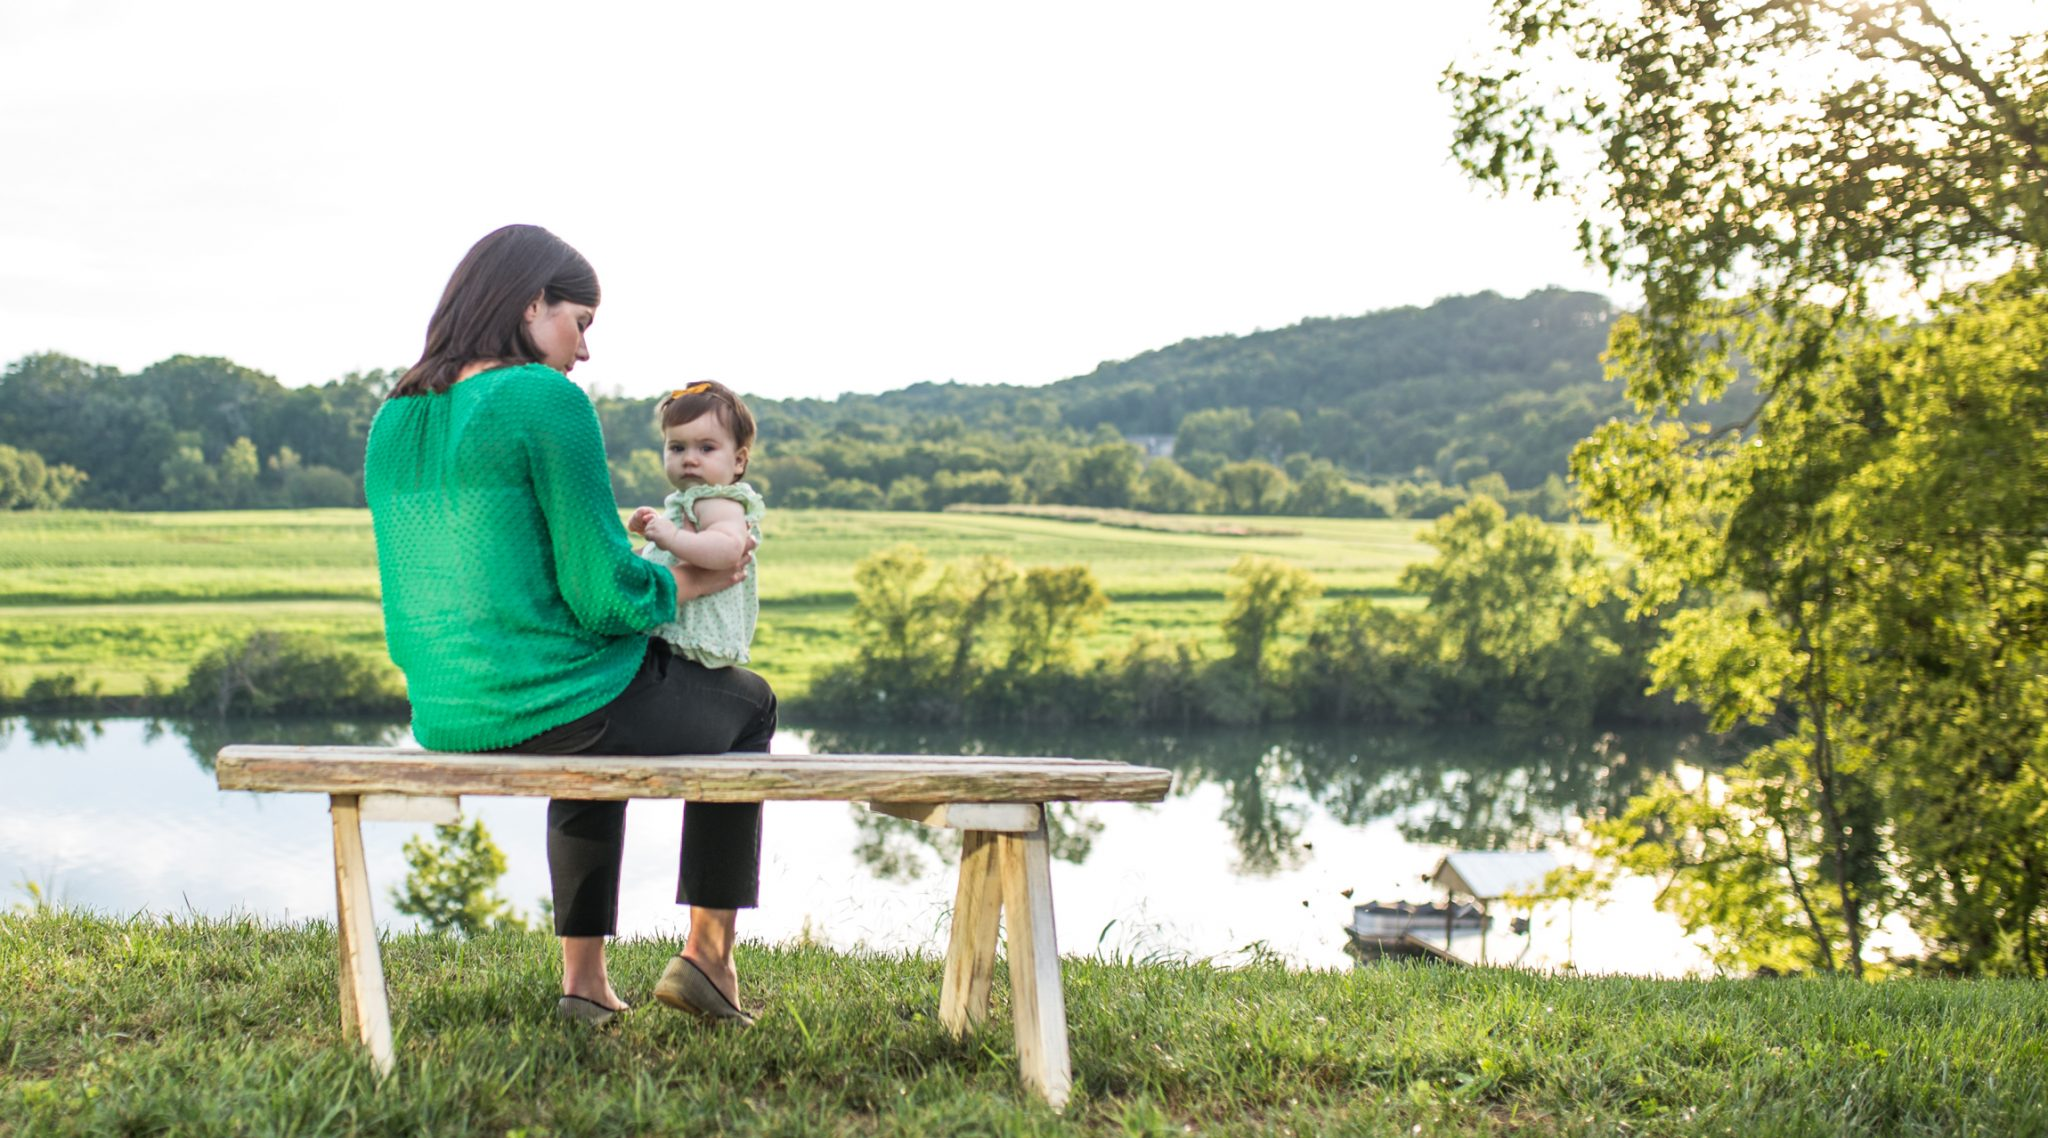 Raising Expectations for Expecting Mothers in Tennessee